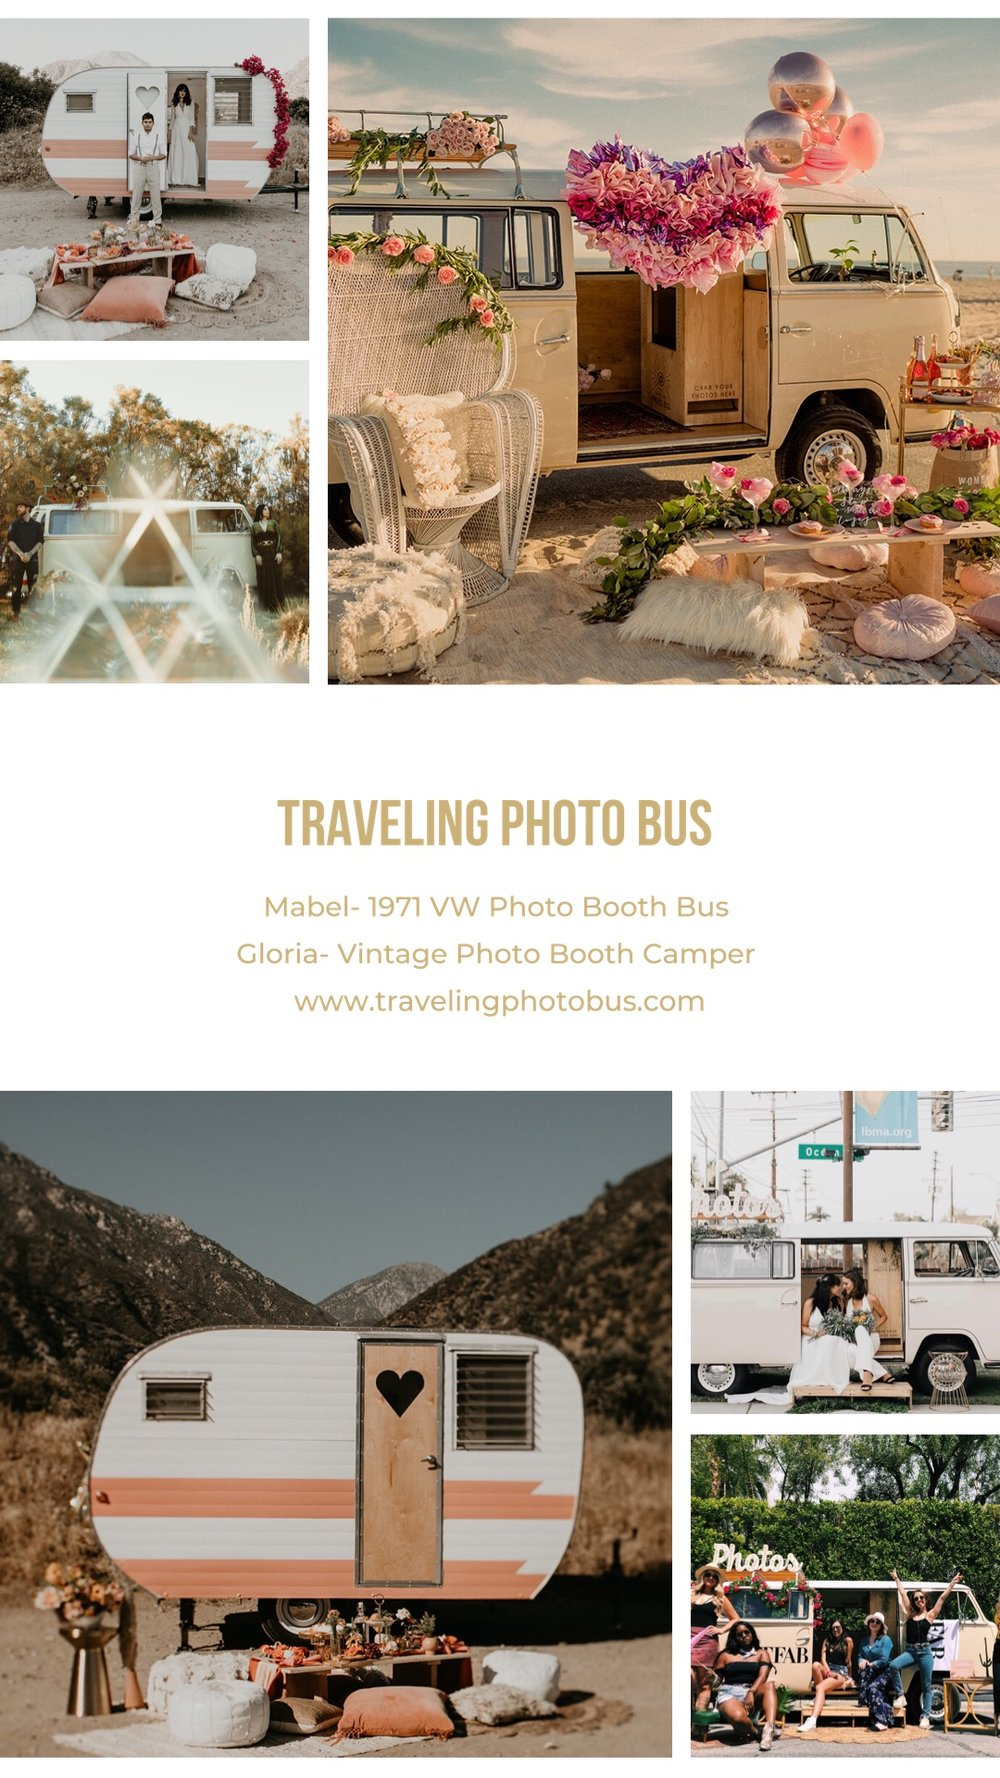 Photo Camper Camper Booth Booth Photo Bus jpg Bus jpg Bus Camper jpg Booth Photo 66qfwr